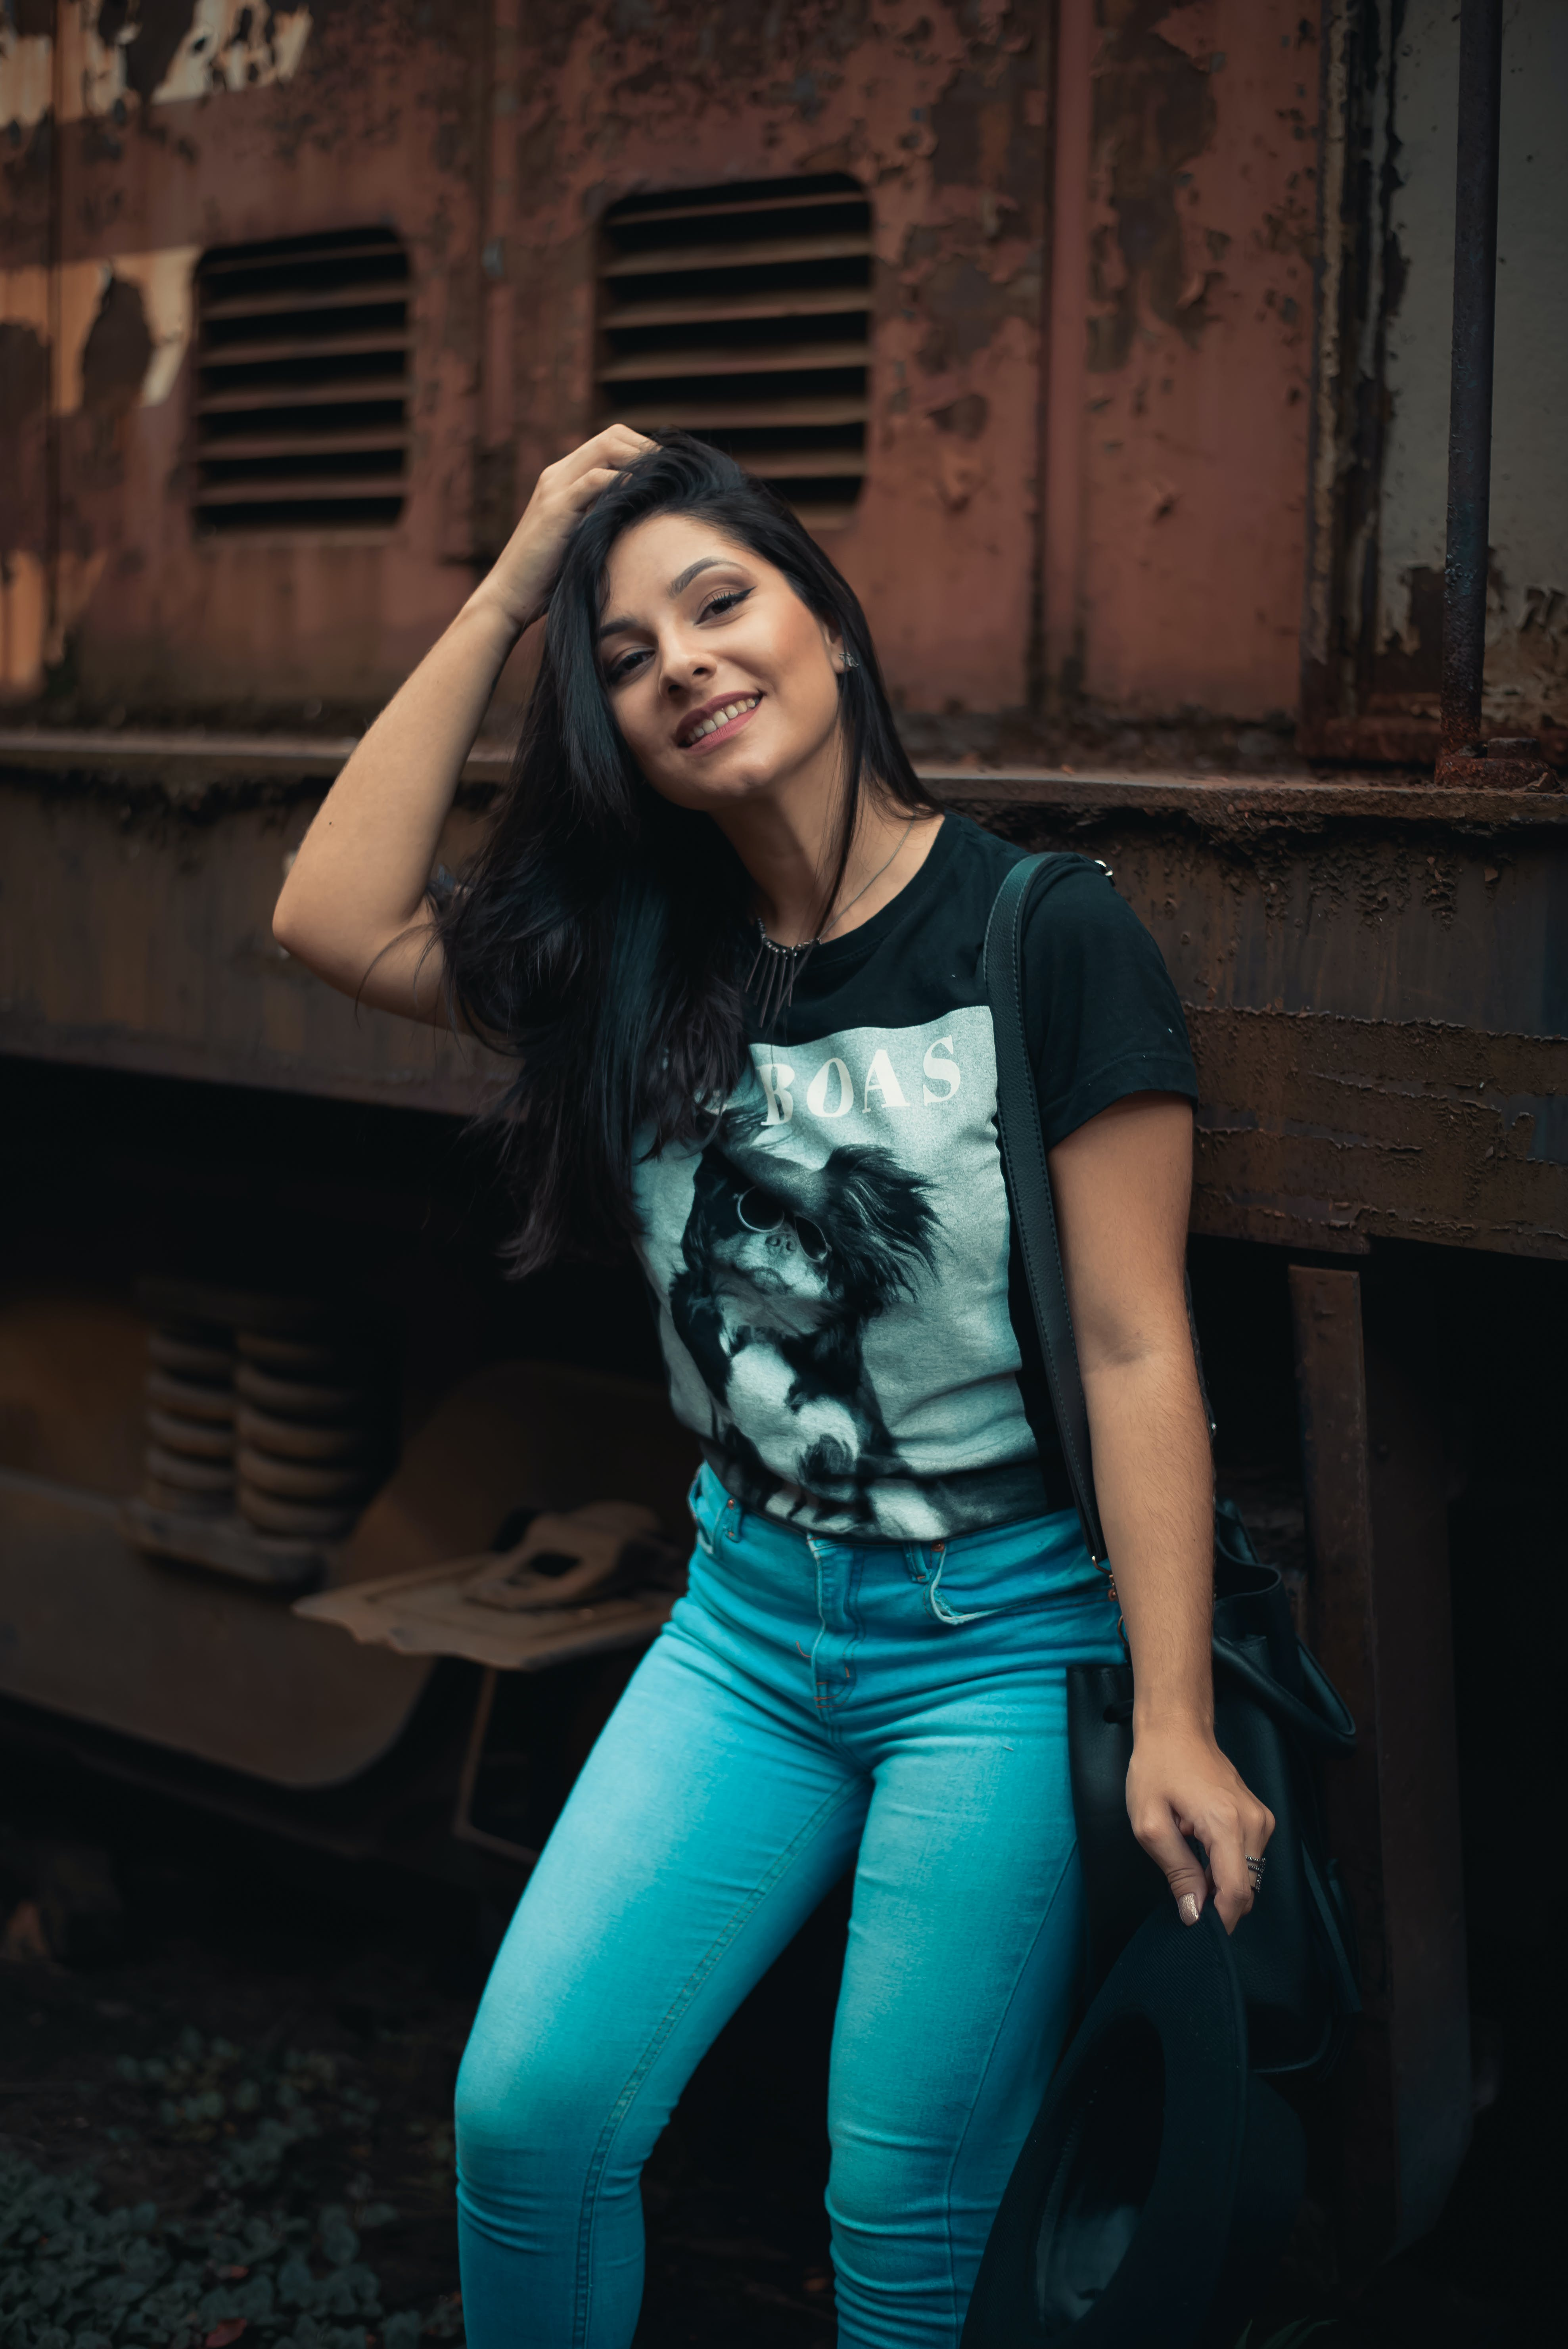 Free stock photo of black t-shirt, blue jeans, jeans, model